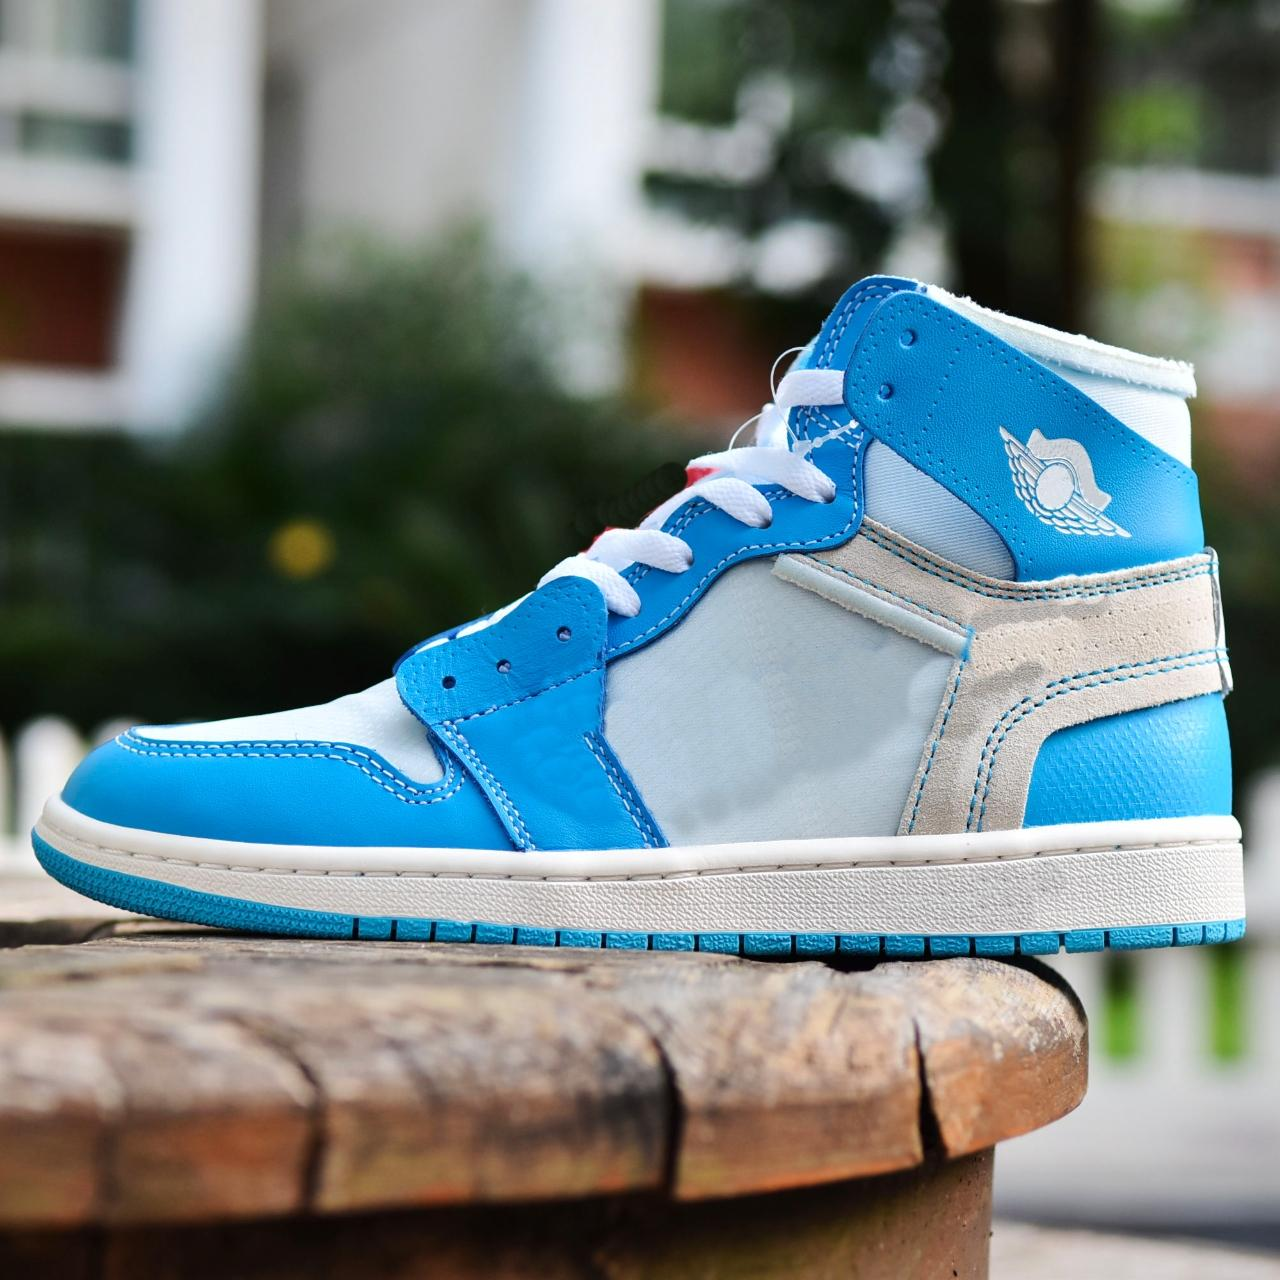 Basketball Shoes 1 Retro High Off University White Blue Chicago 85 Men Sport Outdoor High quality With Original Box AQ0818 US 5.5-11